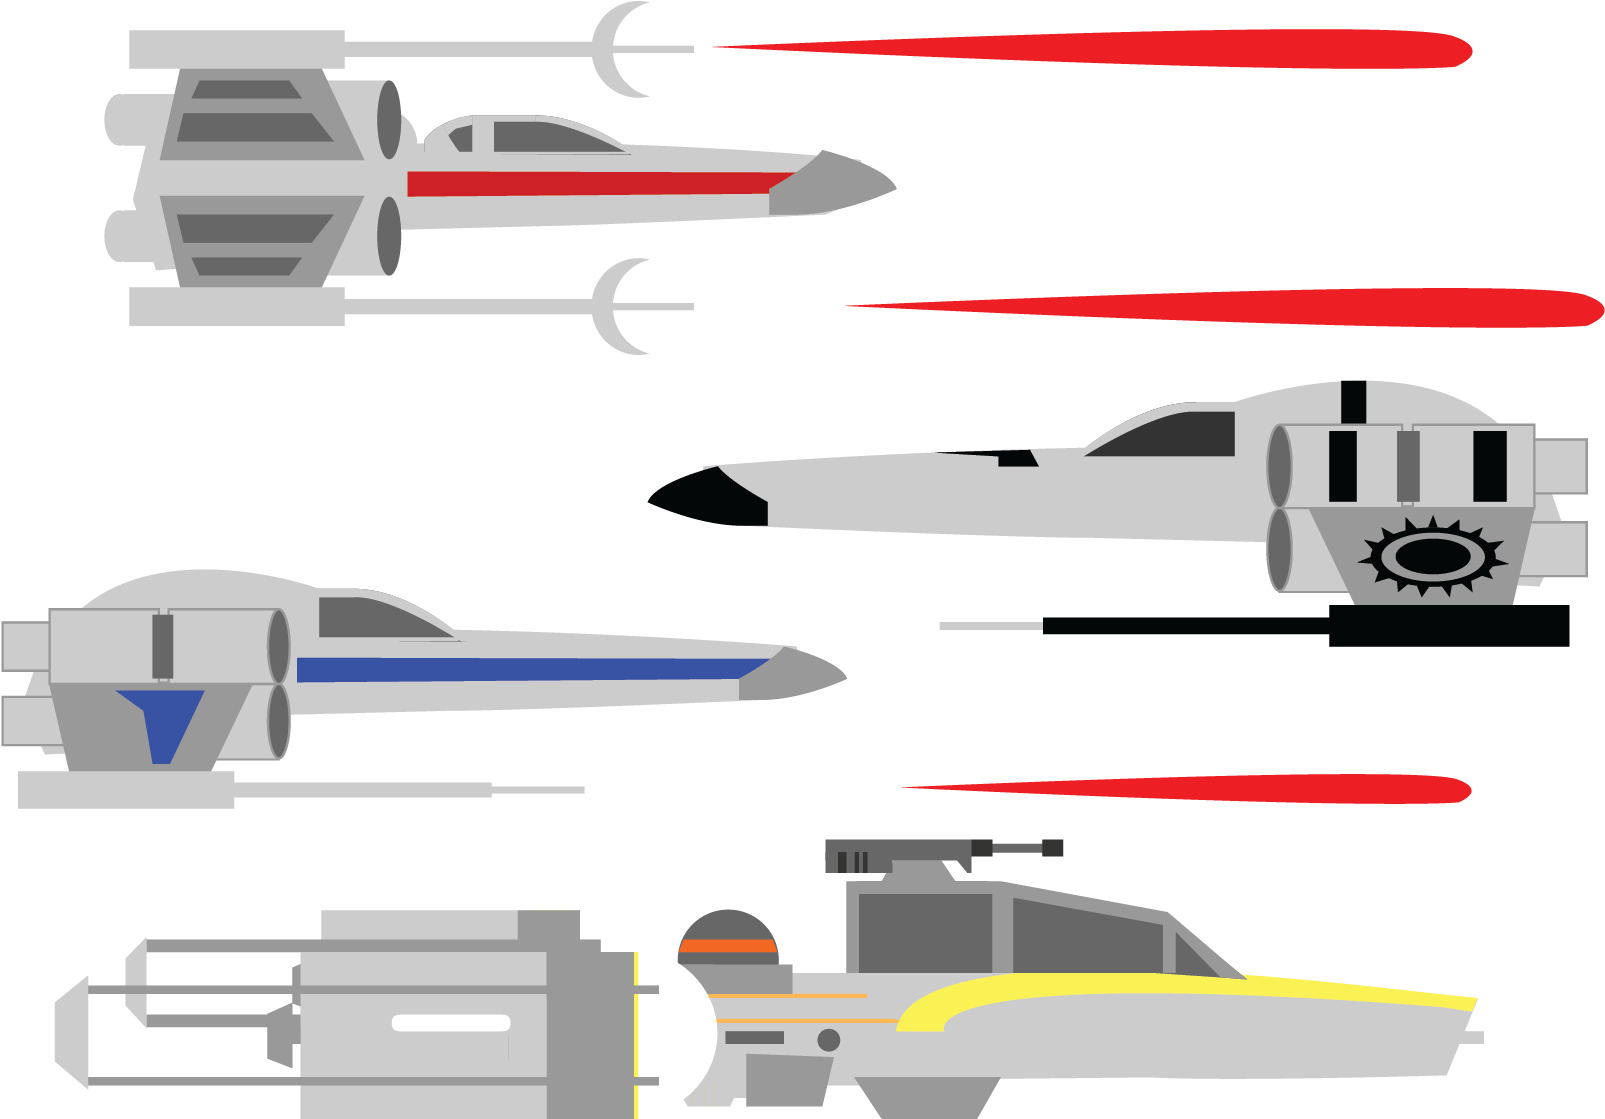 Transparent star wars ships clipart - Incom On The Other Hand, And Rebel Ships In General - Discord Star Wars Emoji